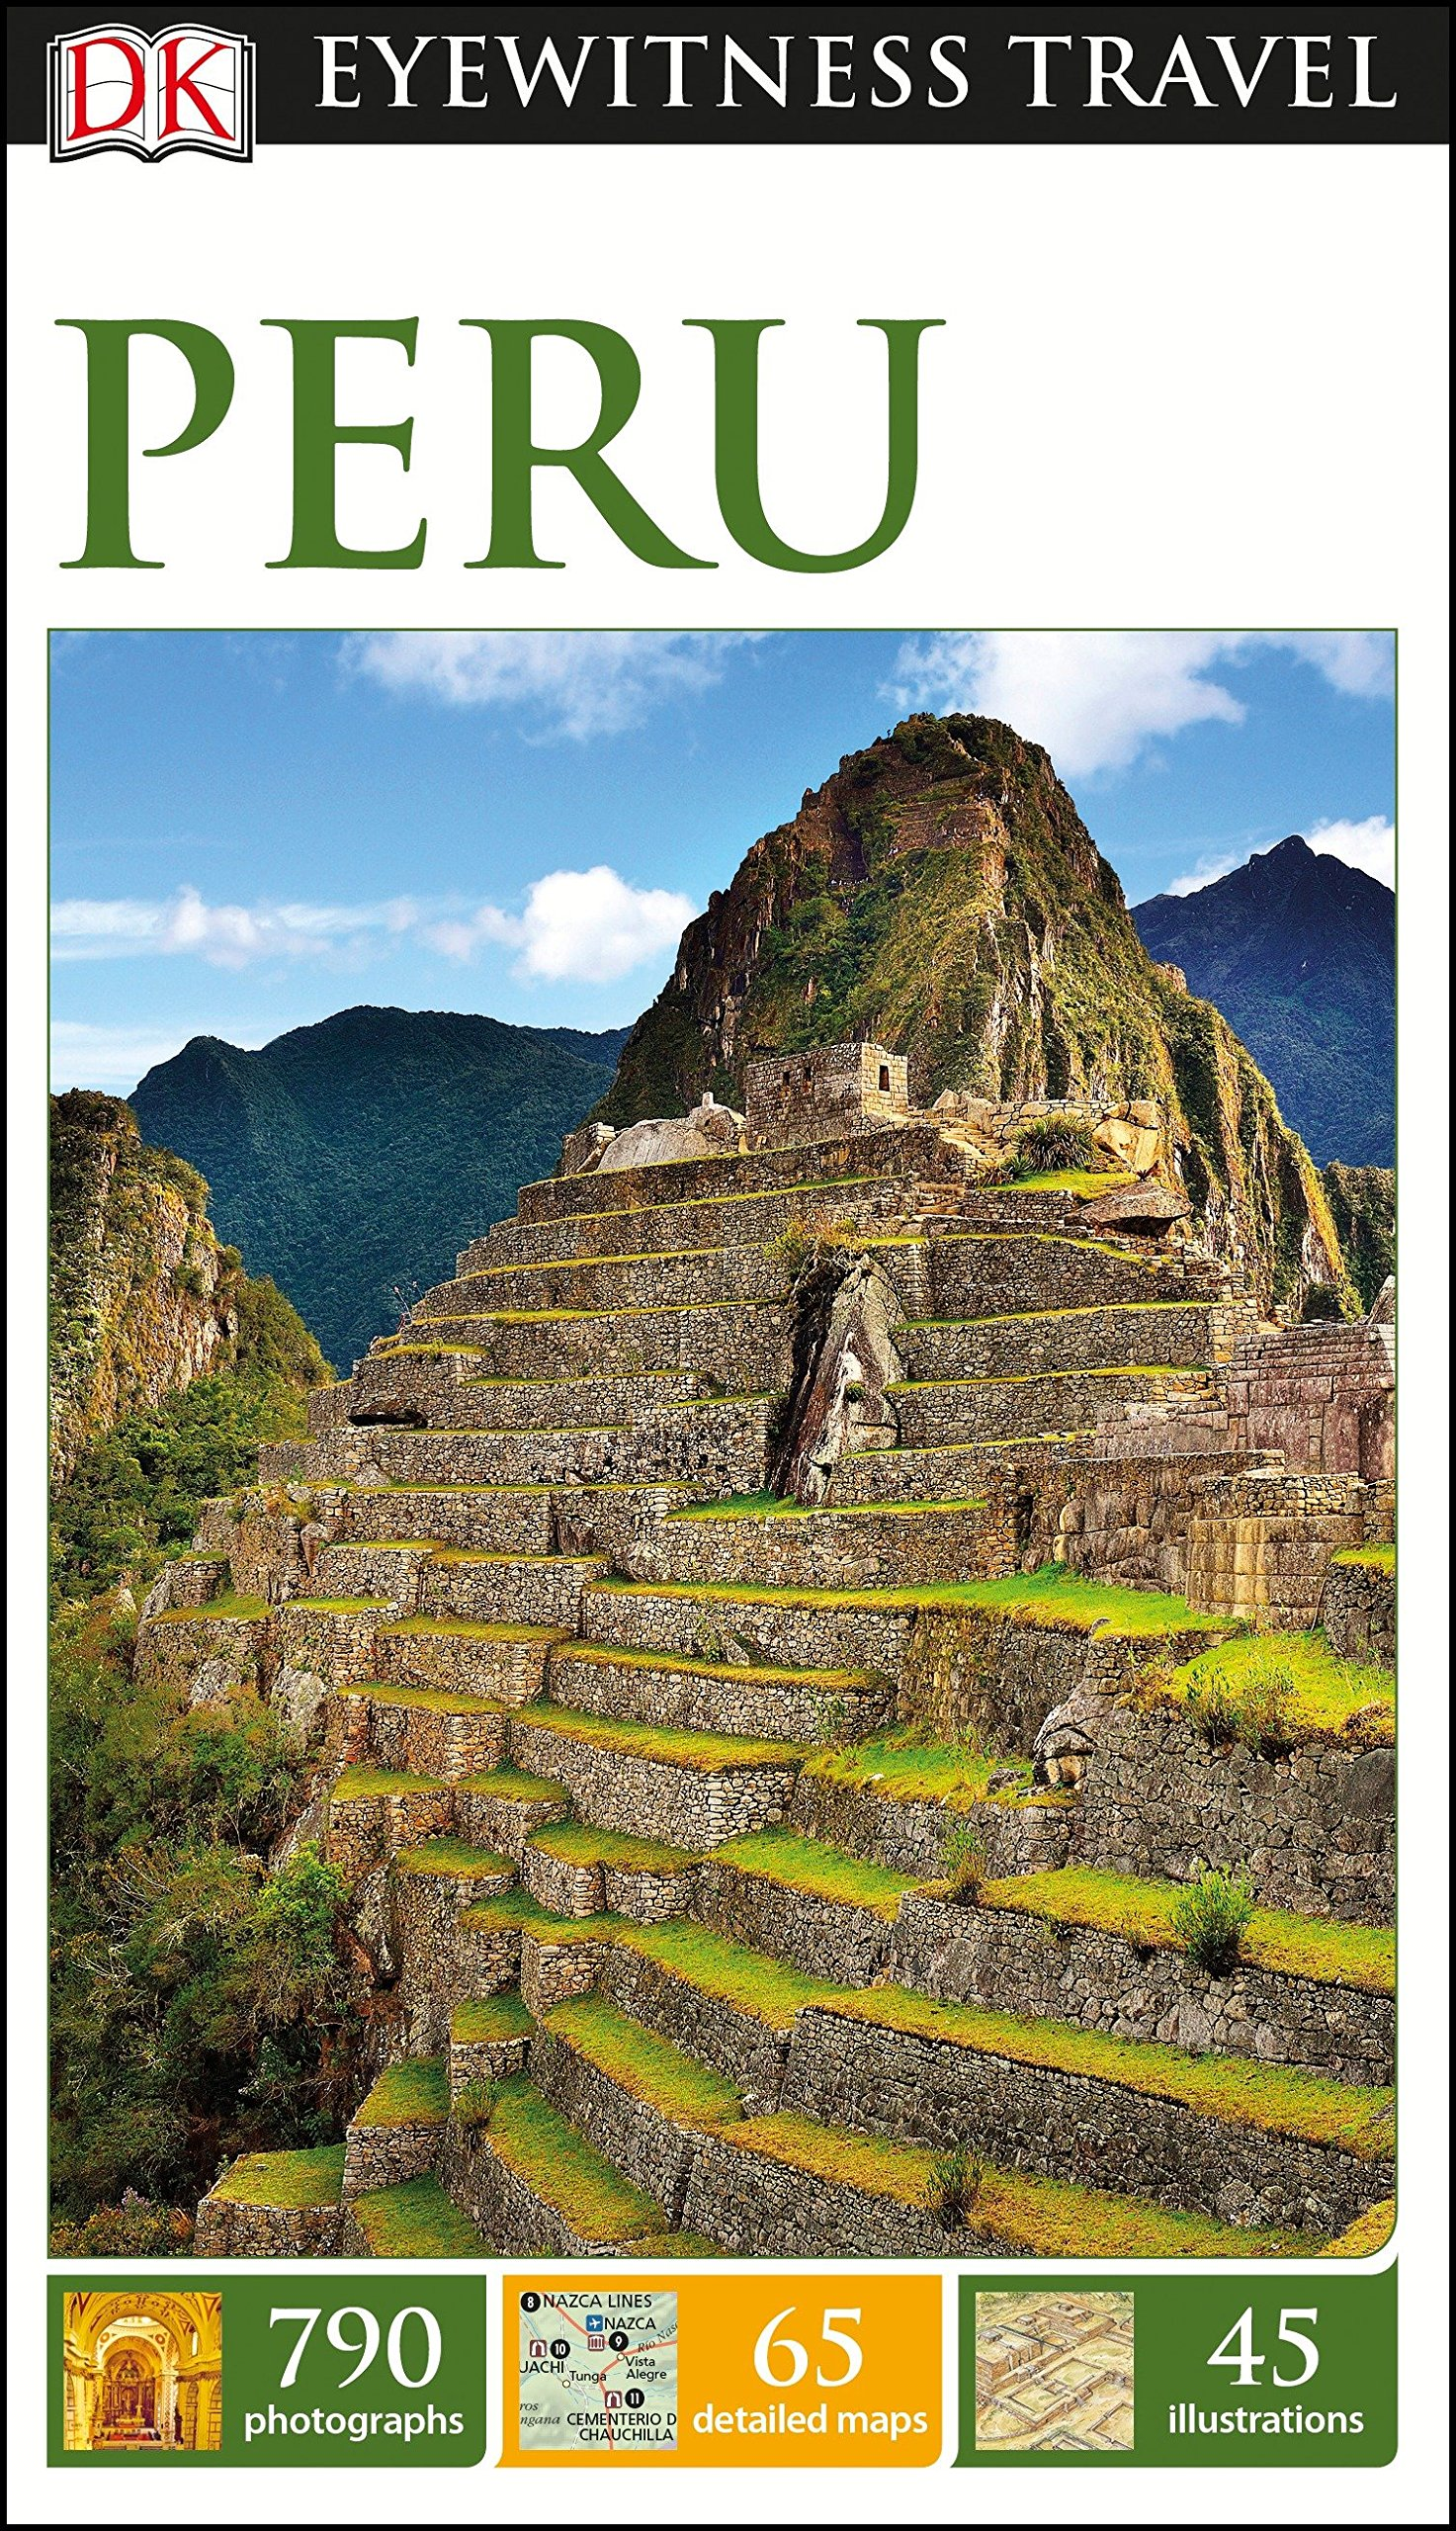 Image result for eyewitness peru 2016